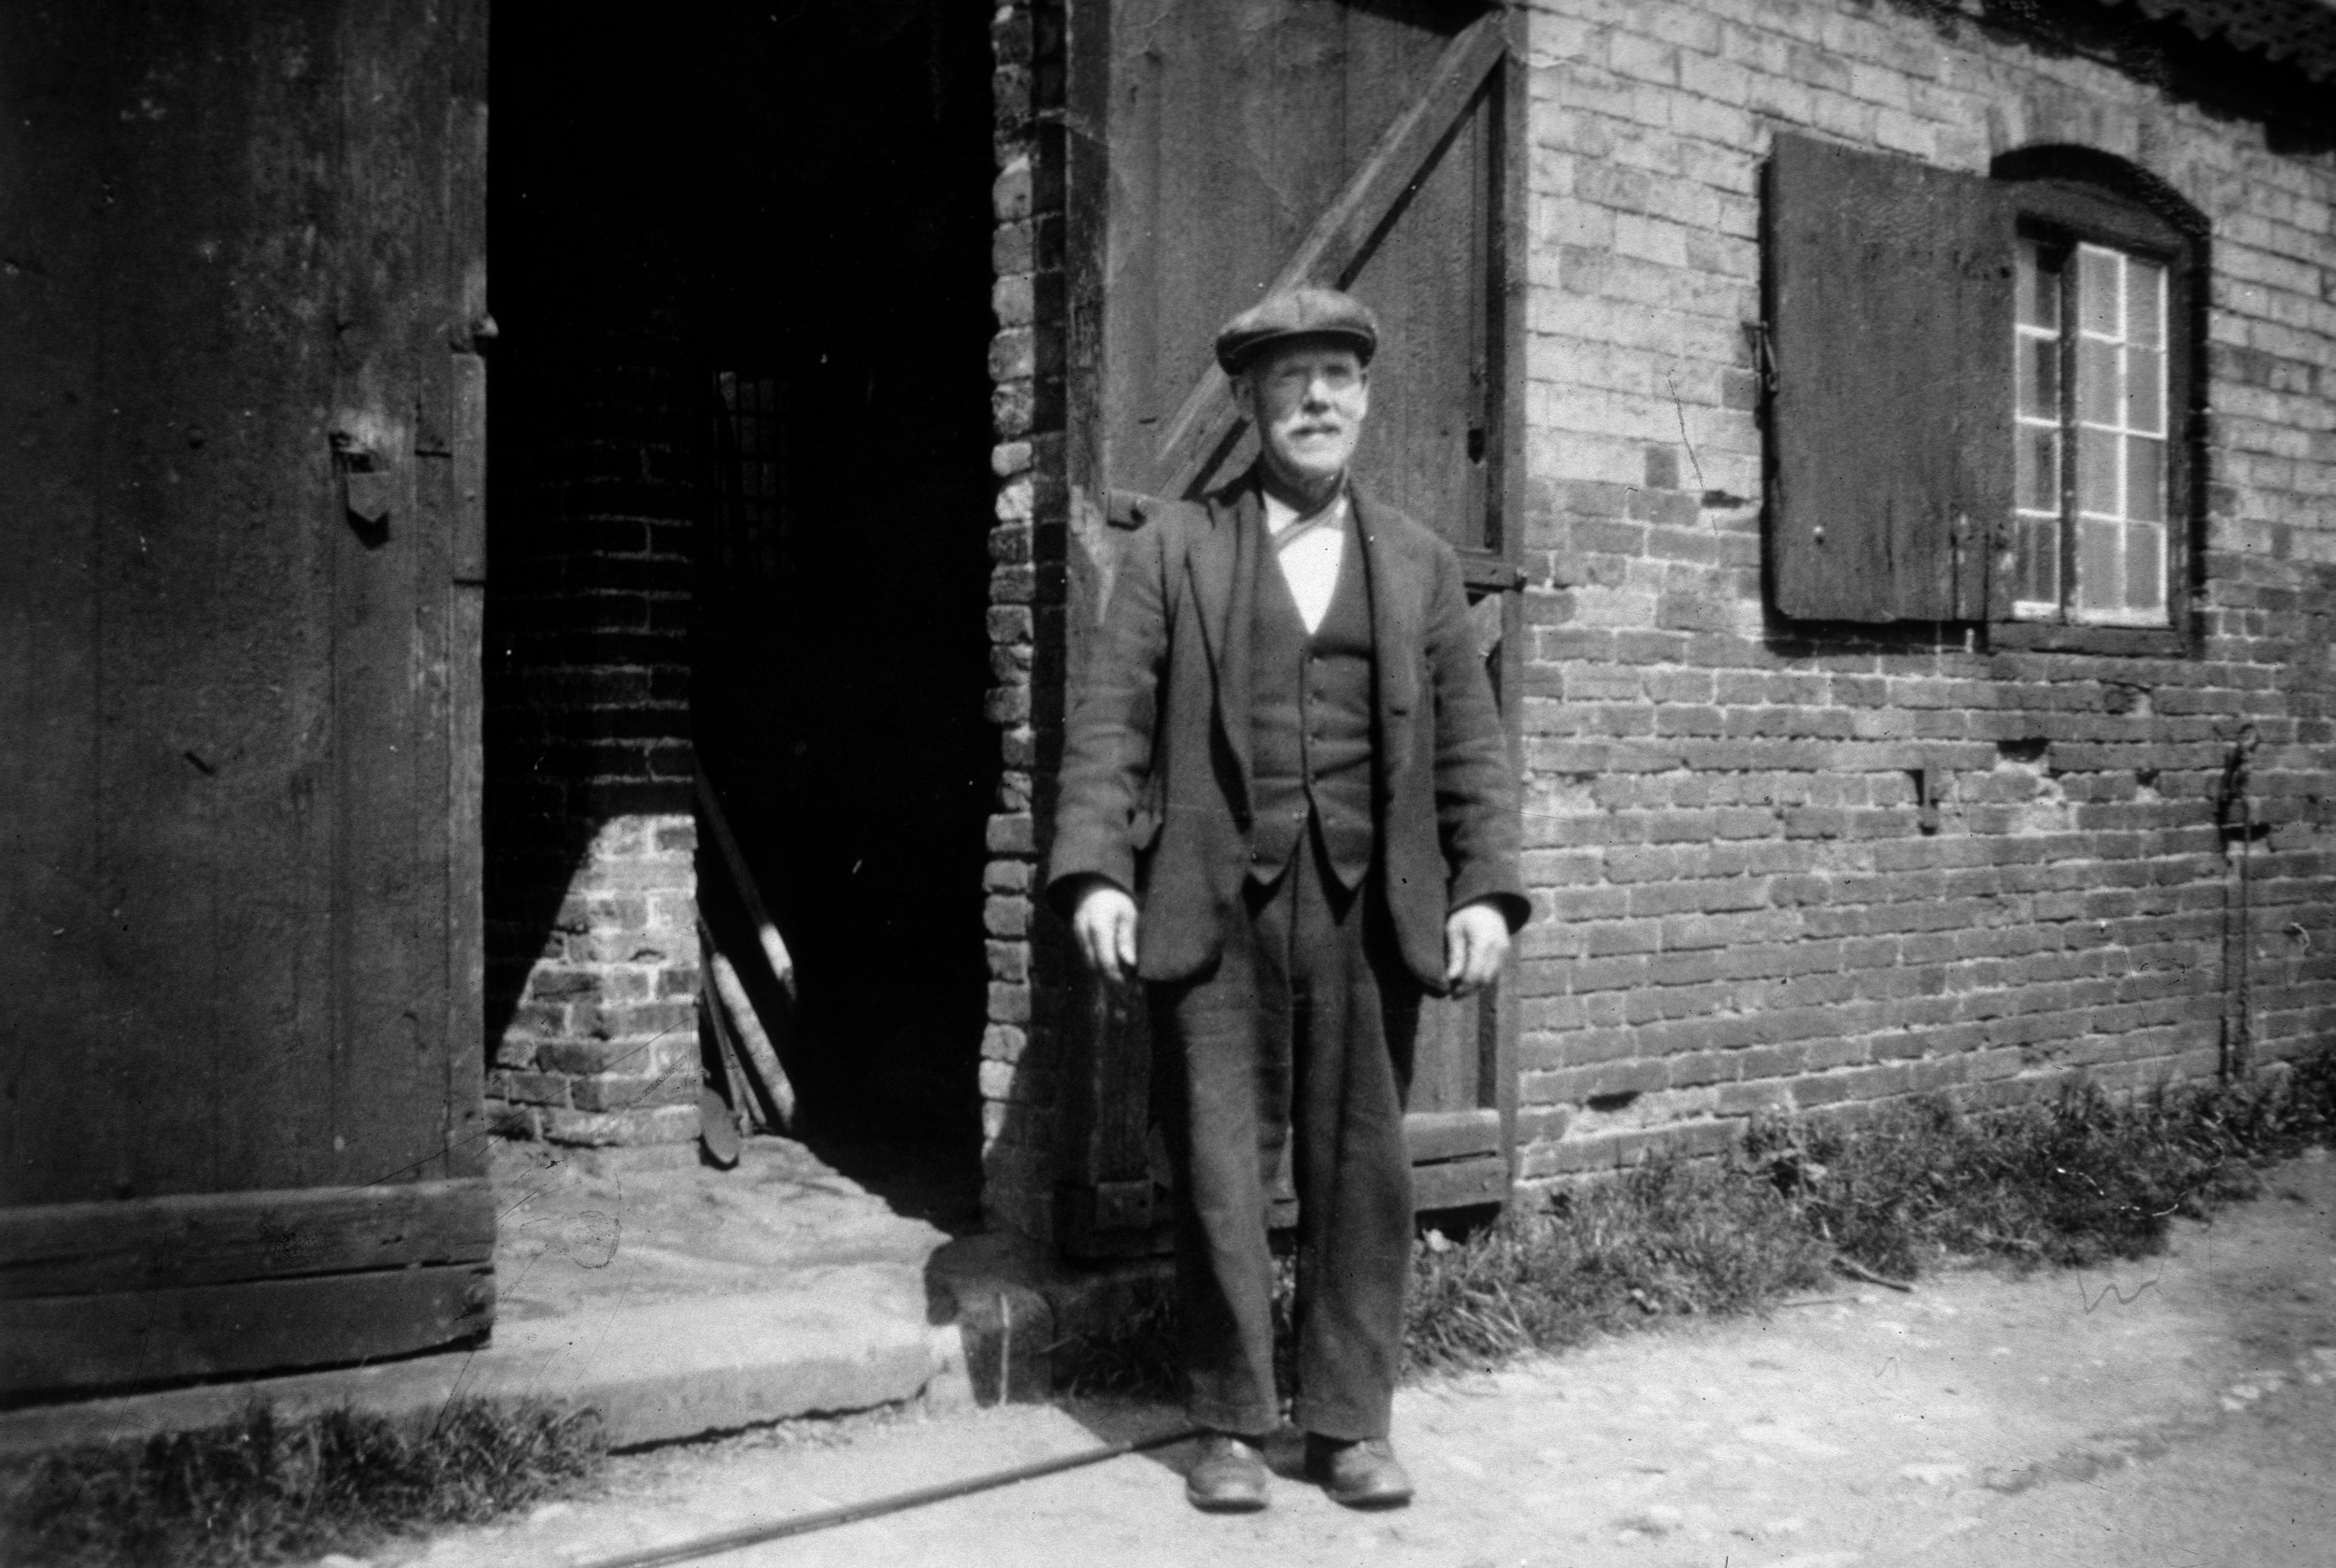 Mr. Thompson - The Blacksmith whose shop was at the site of number 6 The green.